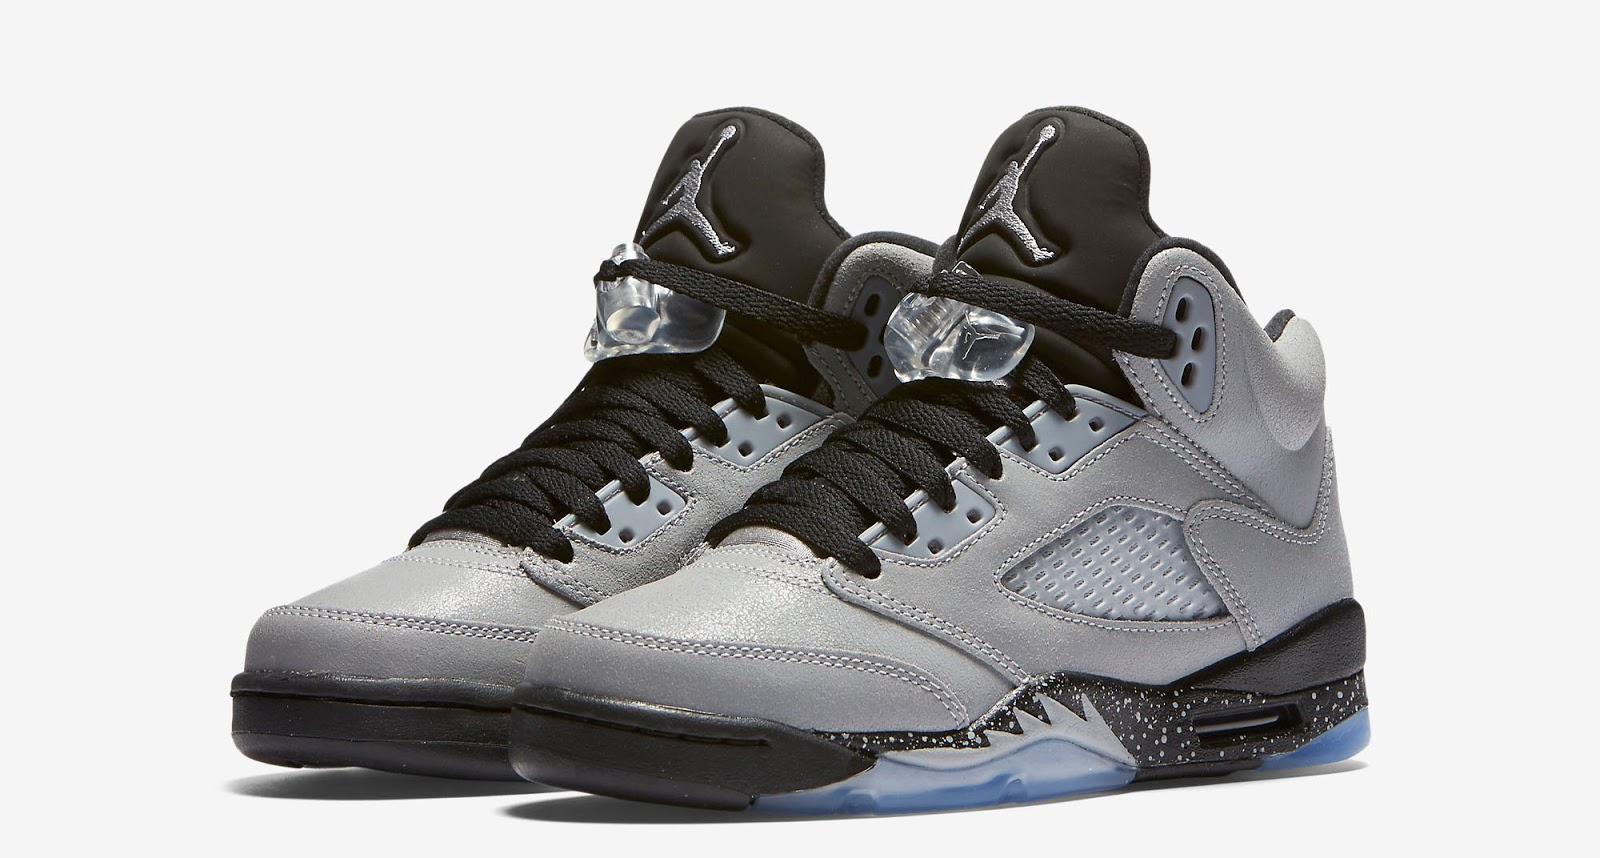 cheap for discount c729d 705b2 Girls Air Jordan 5 Retro GG Wolf Grey Wolf Grey-Black Release Reminder